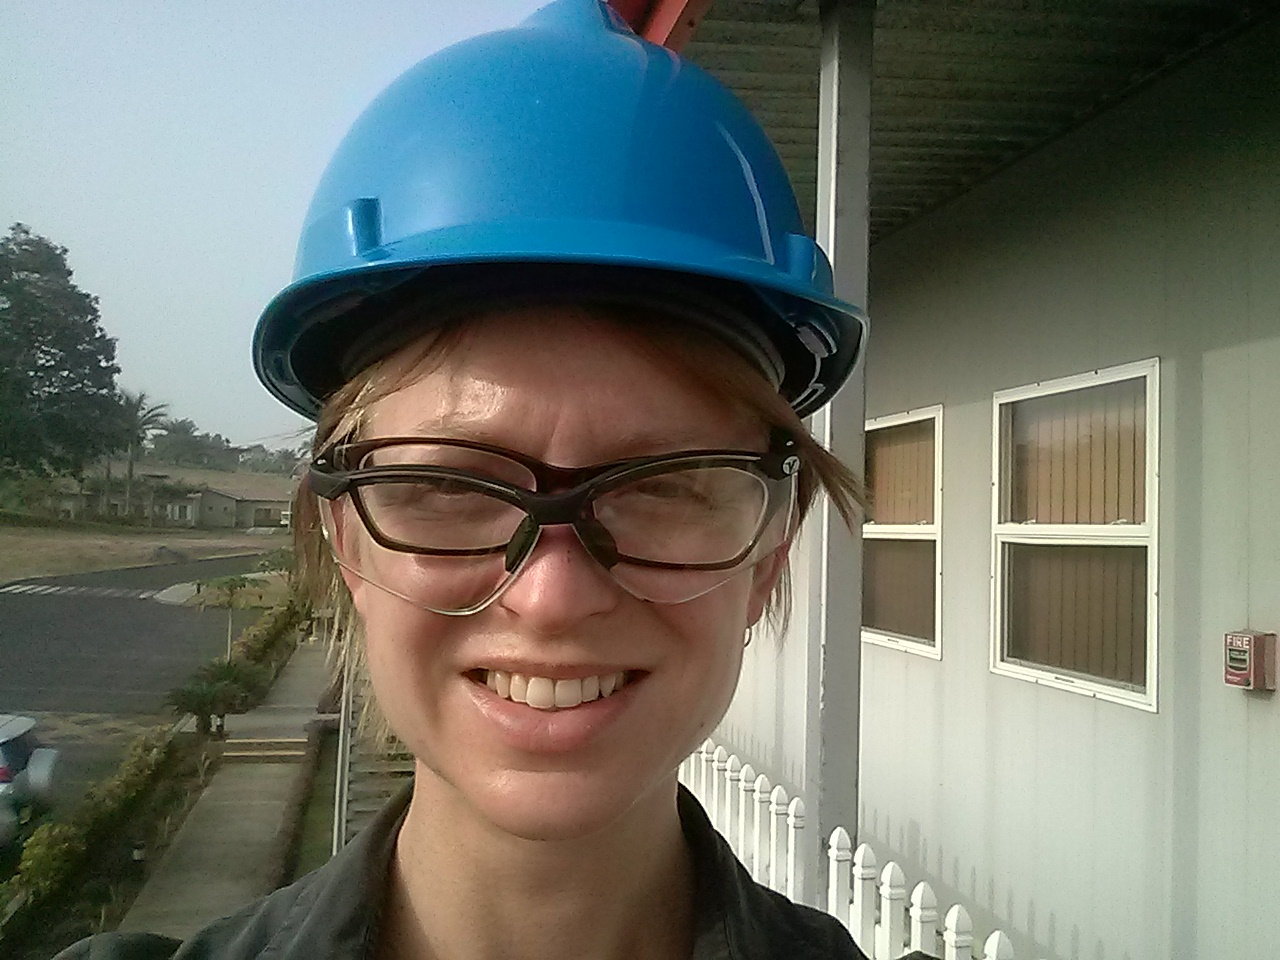 All kitted up in the hard hat and safety glasses!